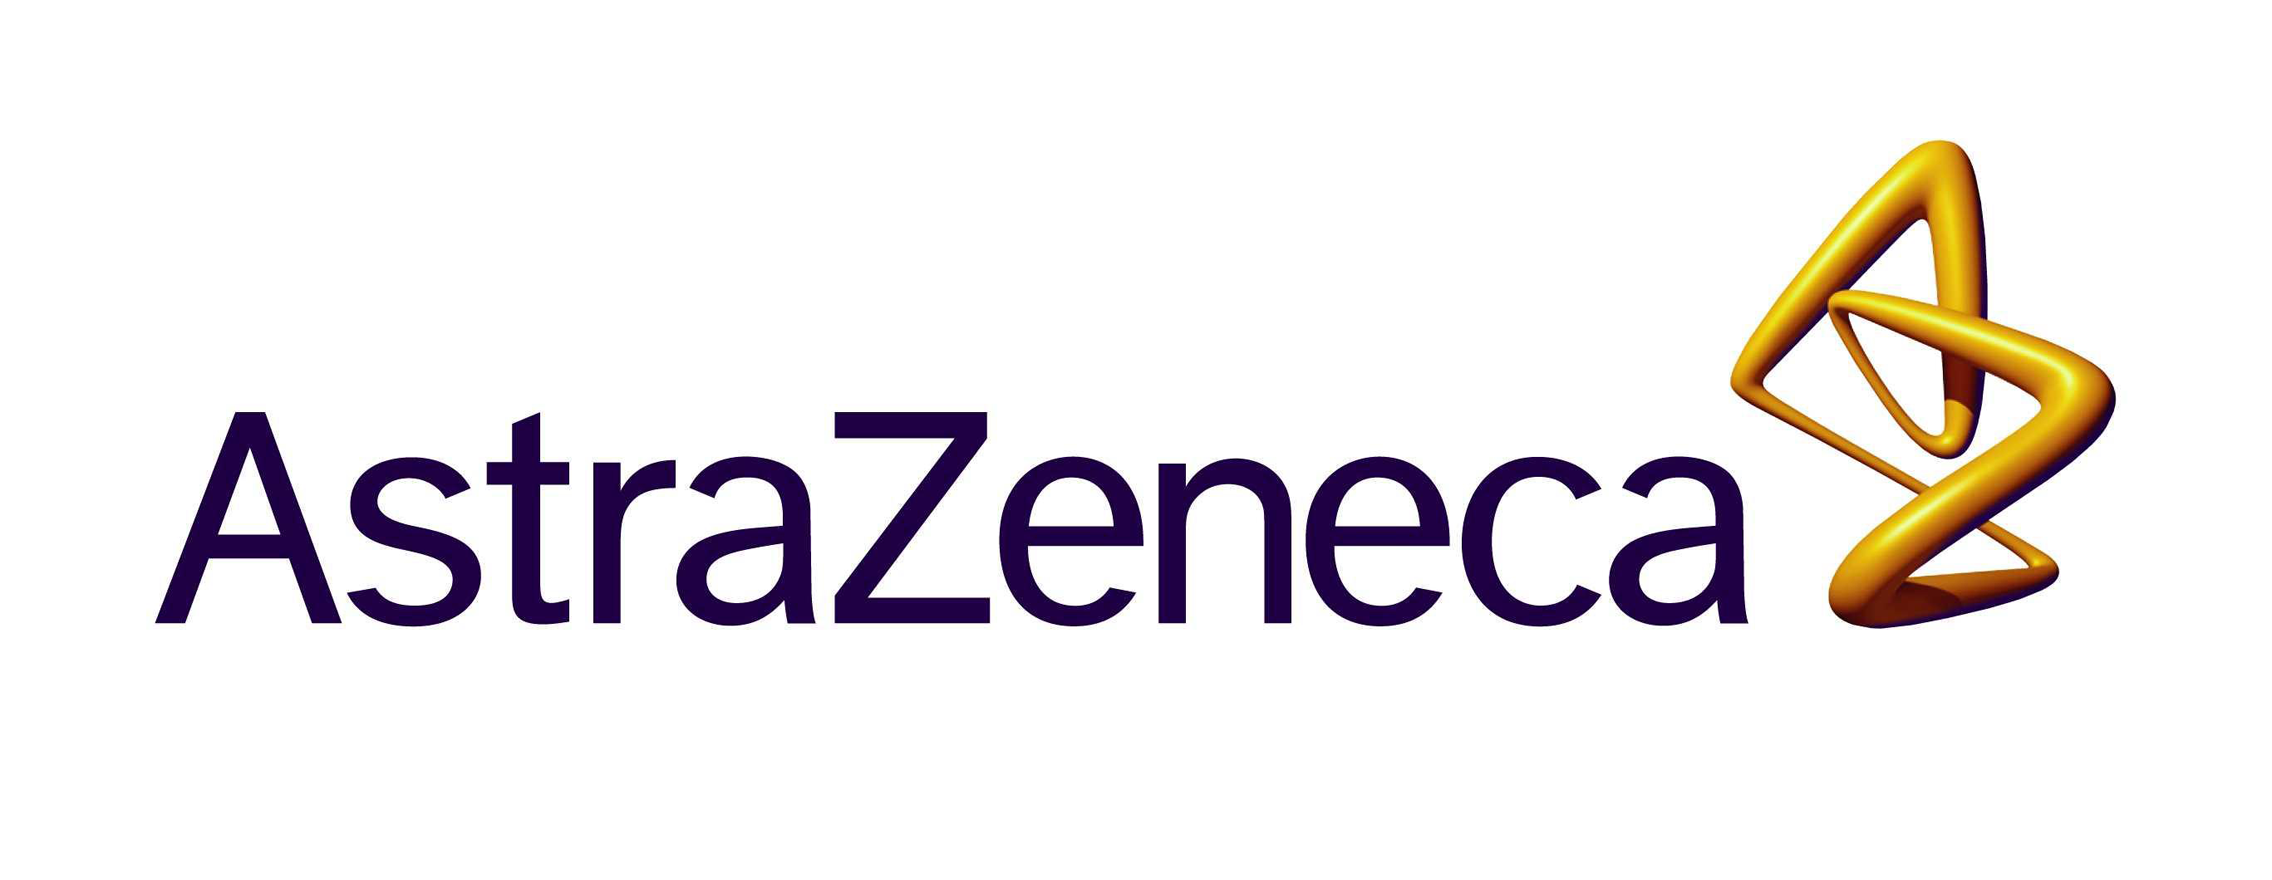 AstraZeneca & Ironwood In An Agreement On Zurampic Right